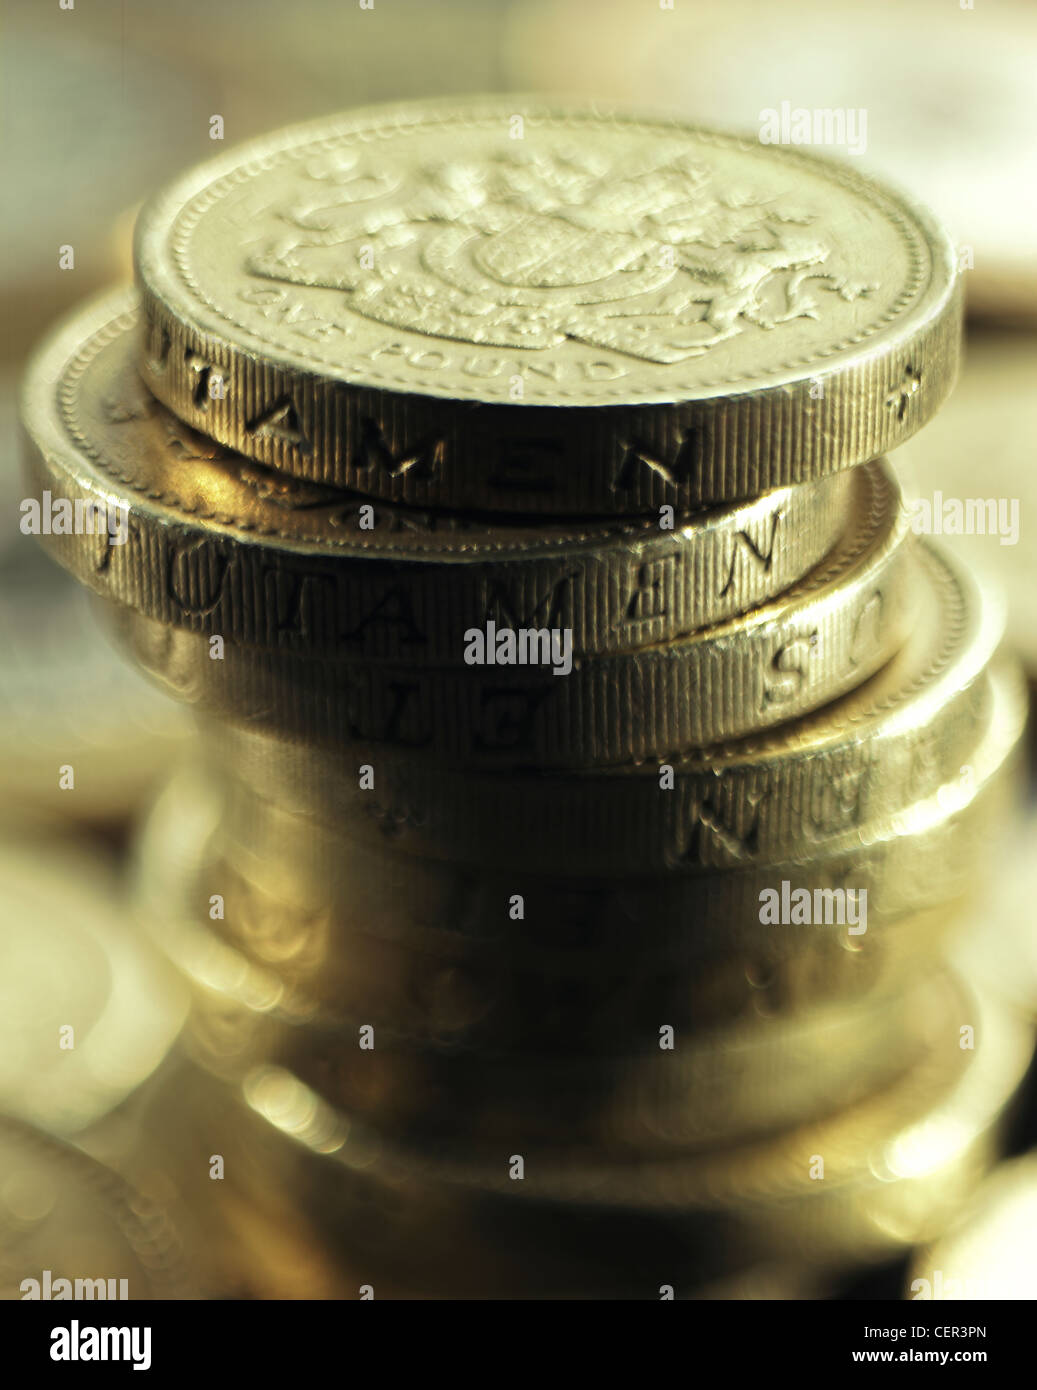 Detail of one pound coins stacked up. - Stock Image